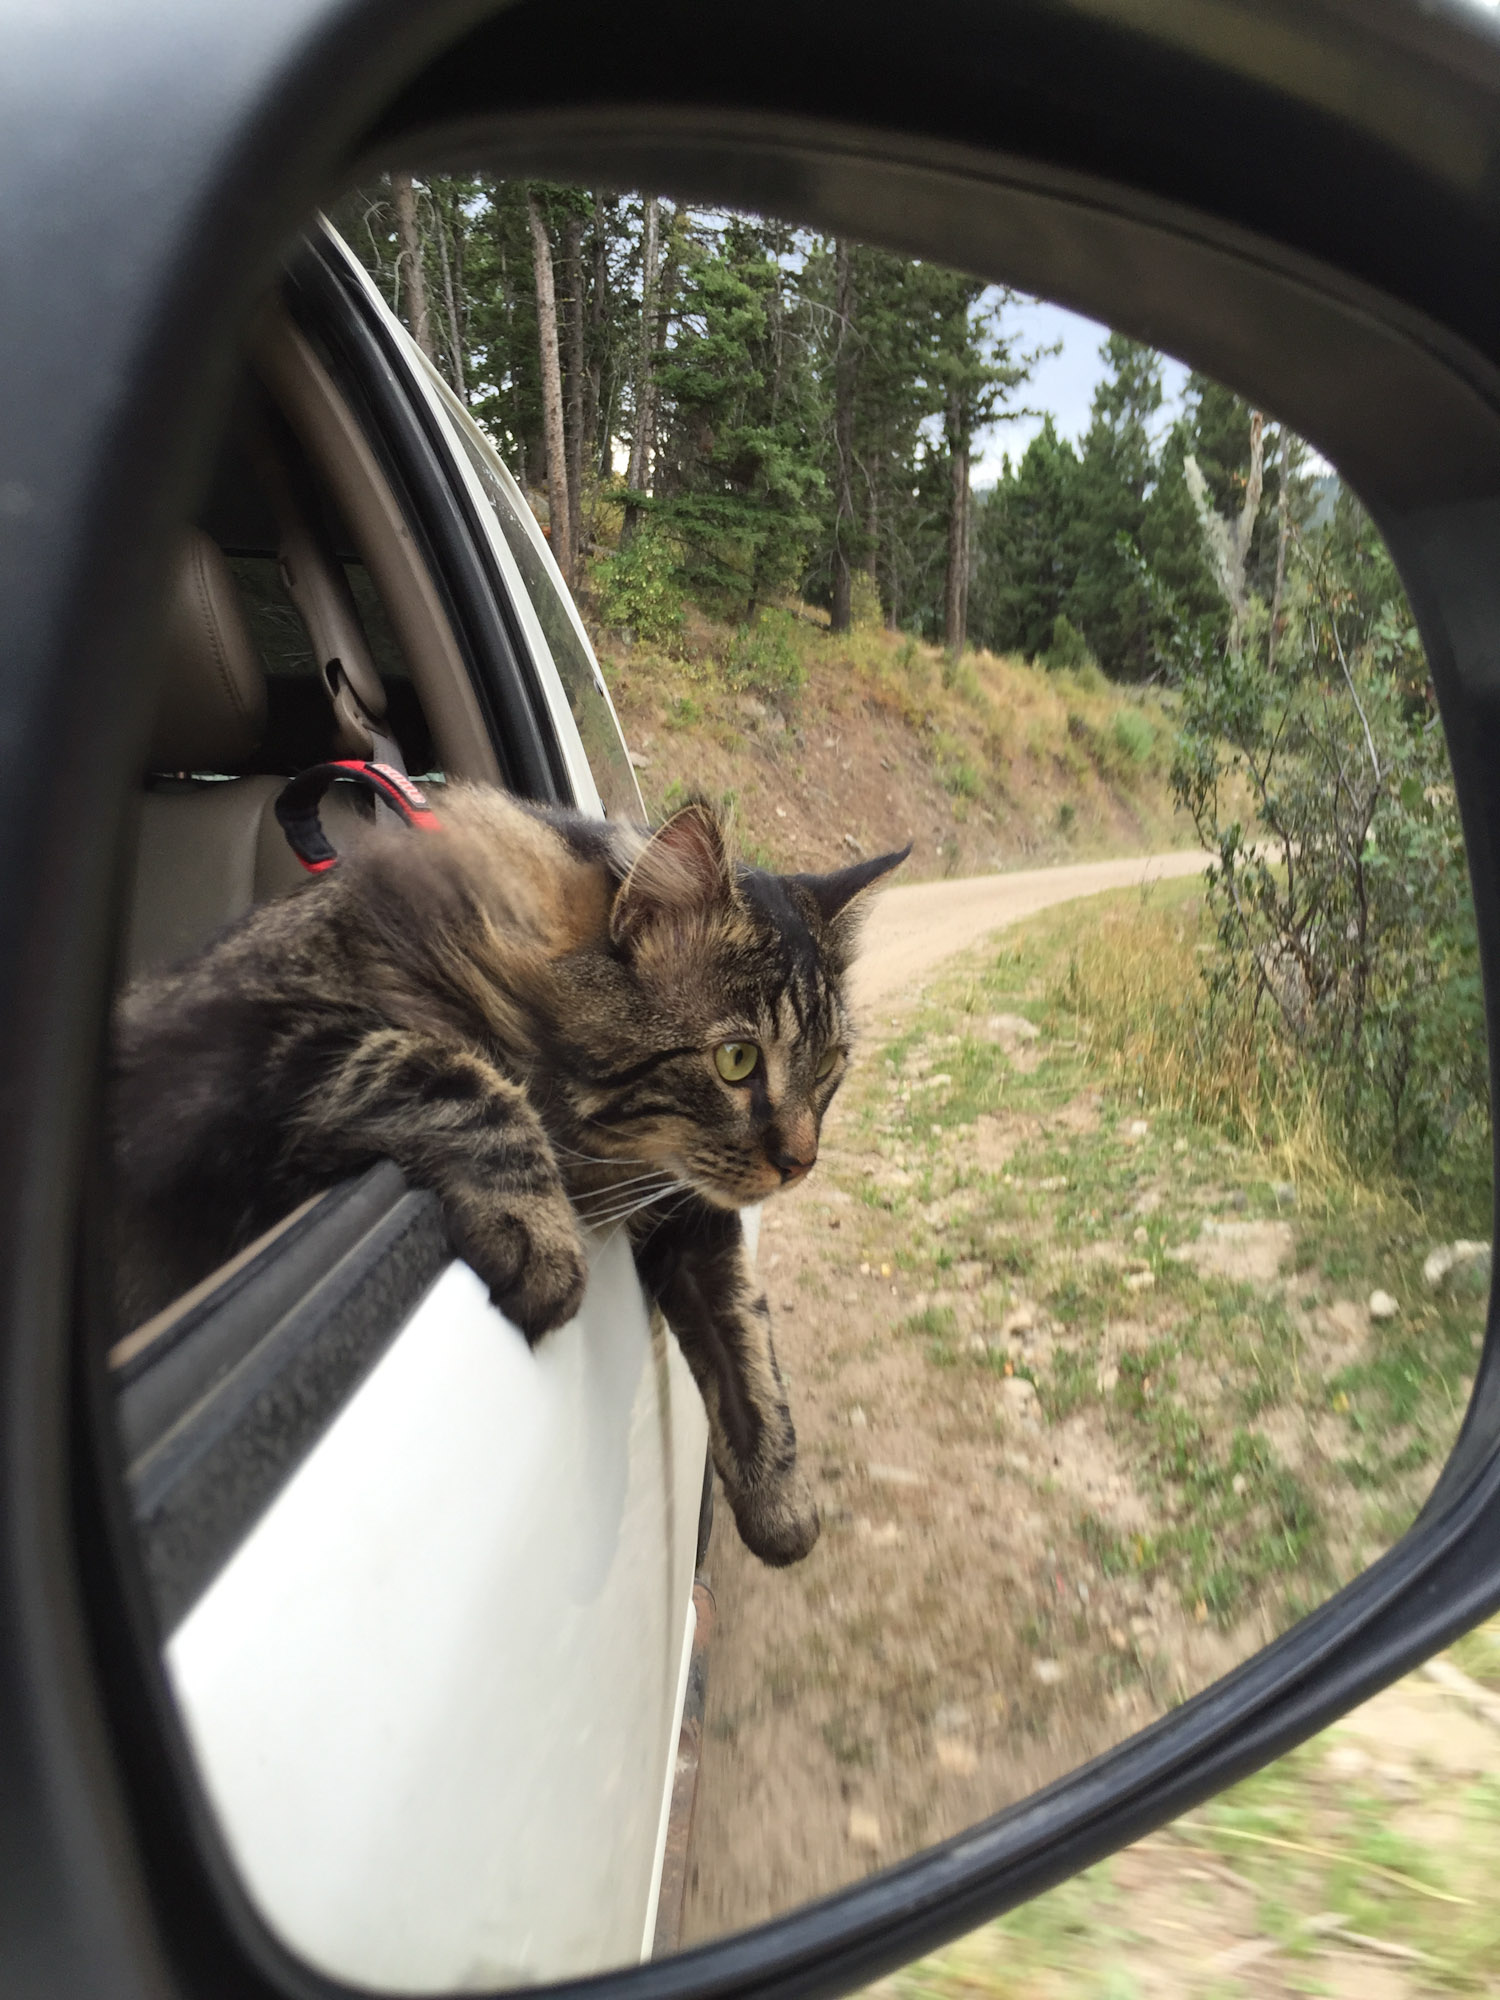 Otie the adventure cat leaning out car window